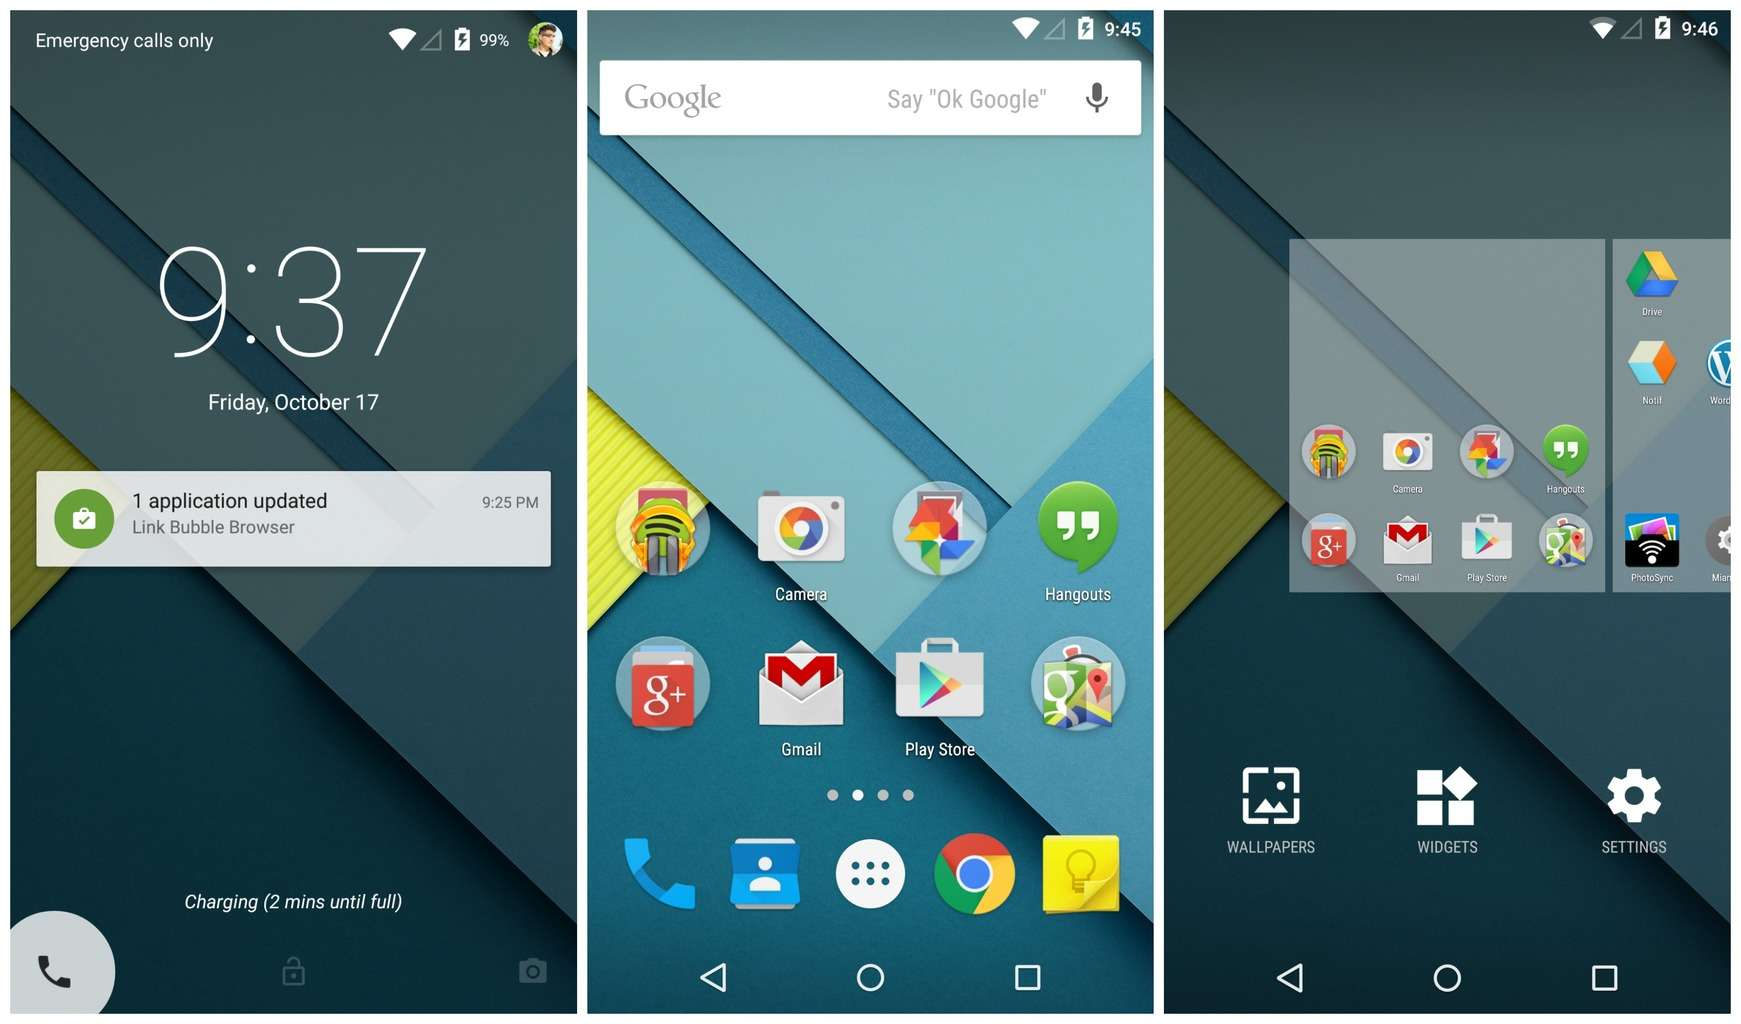 Android-5.0-Lollipop interface